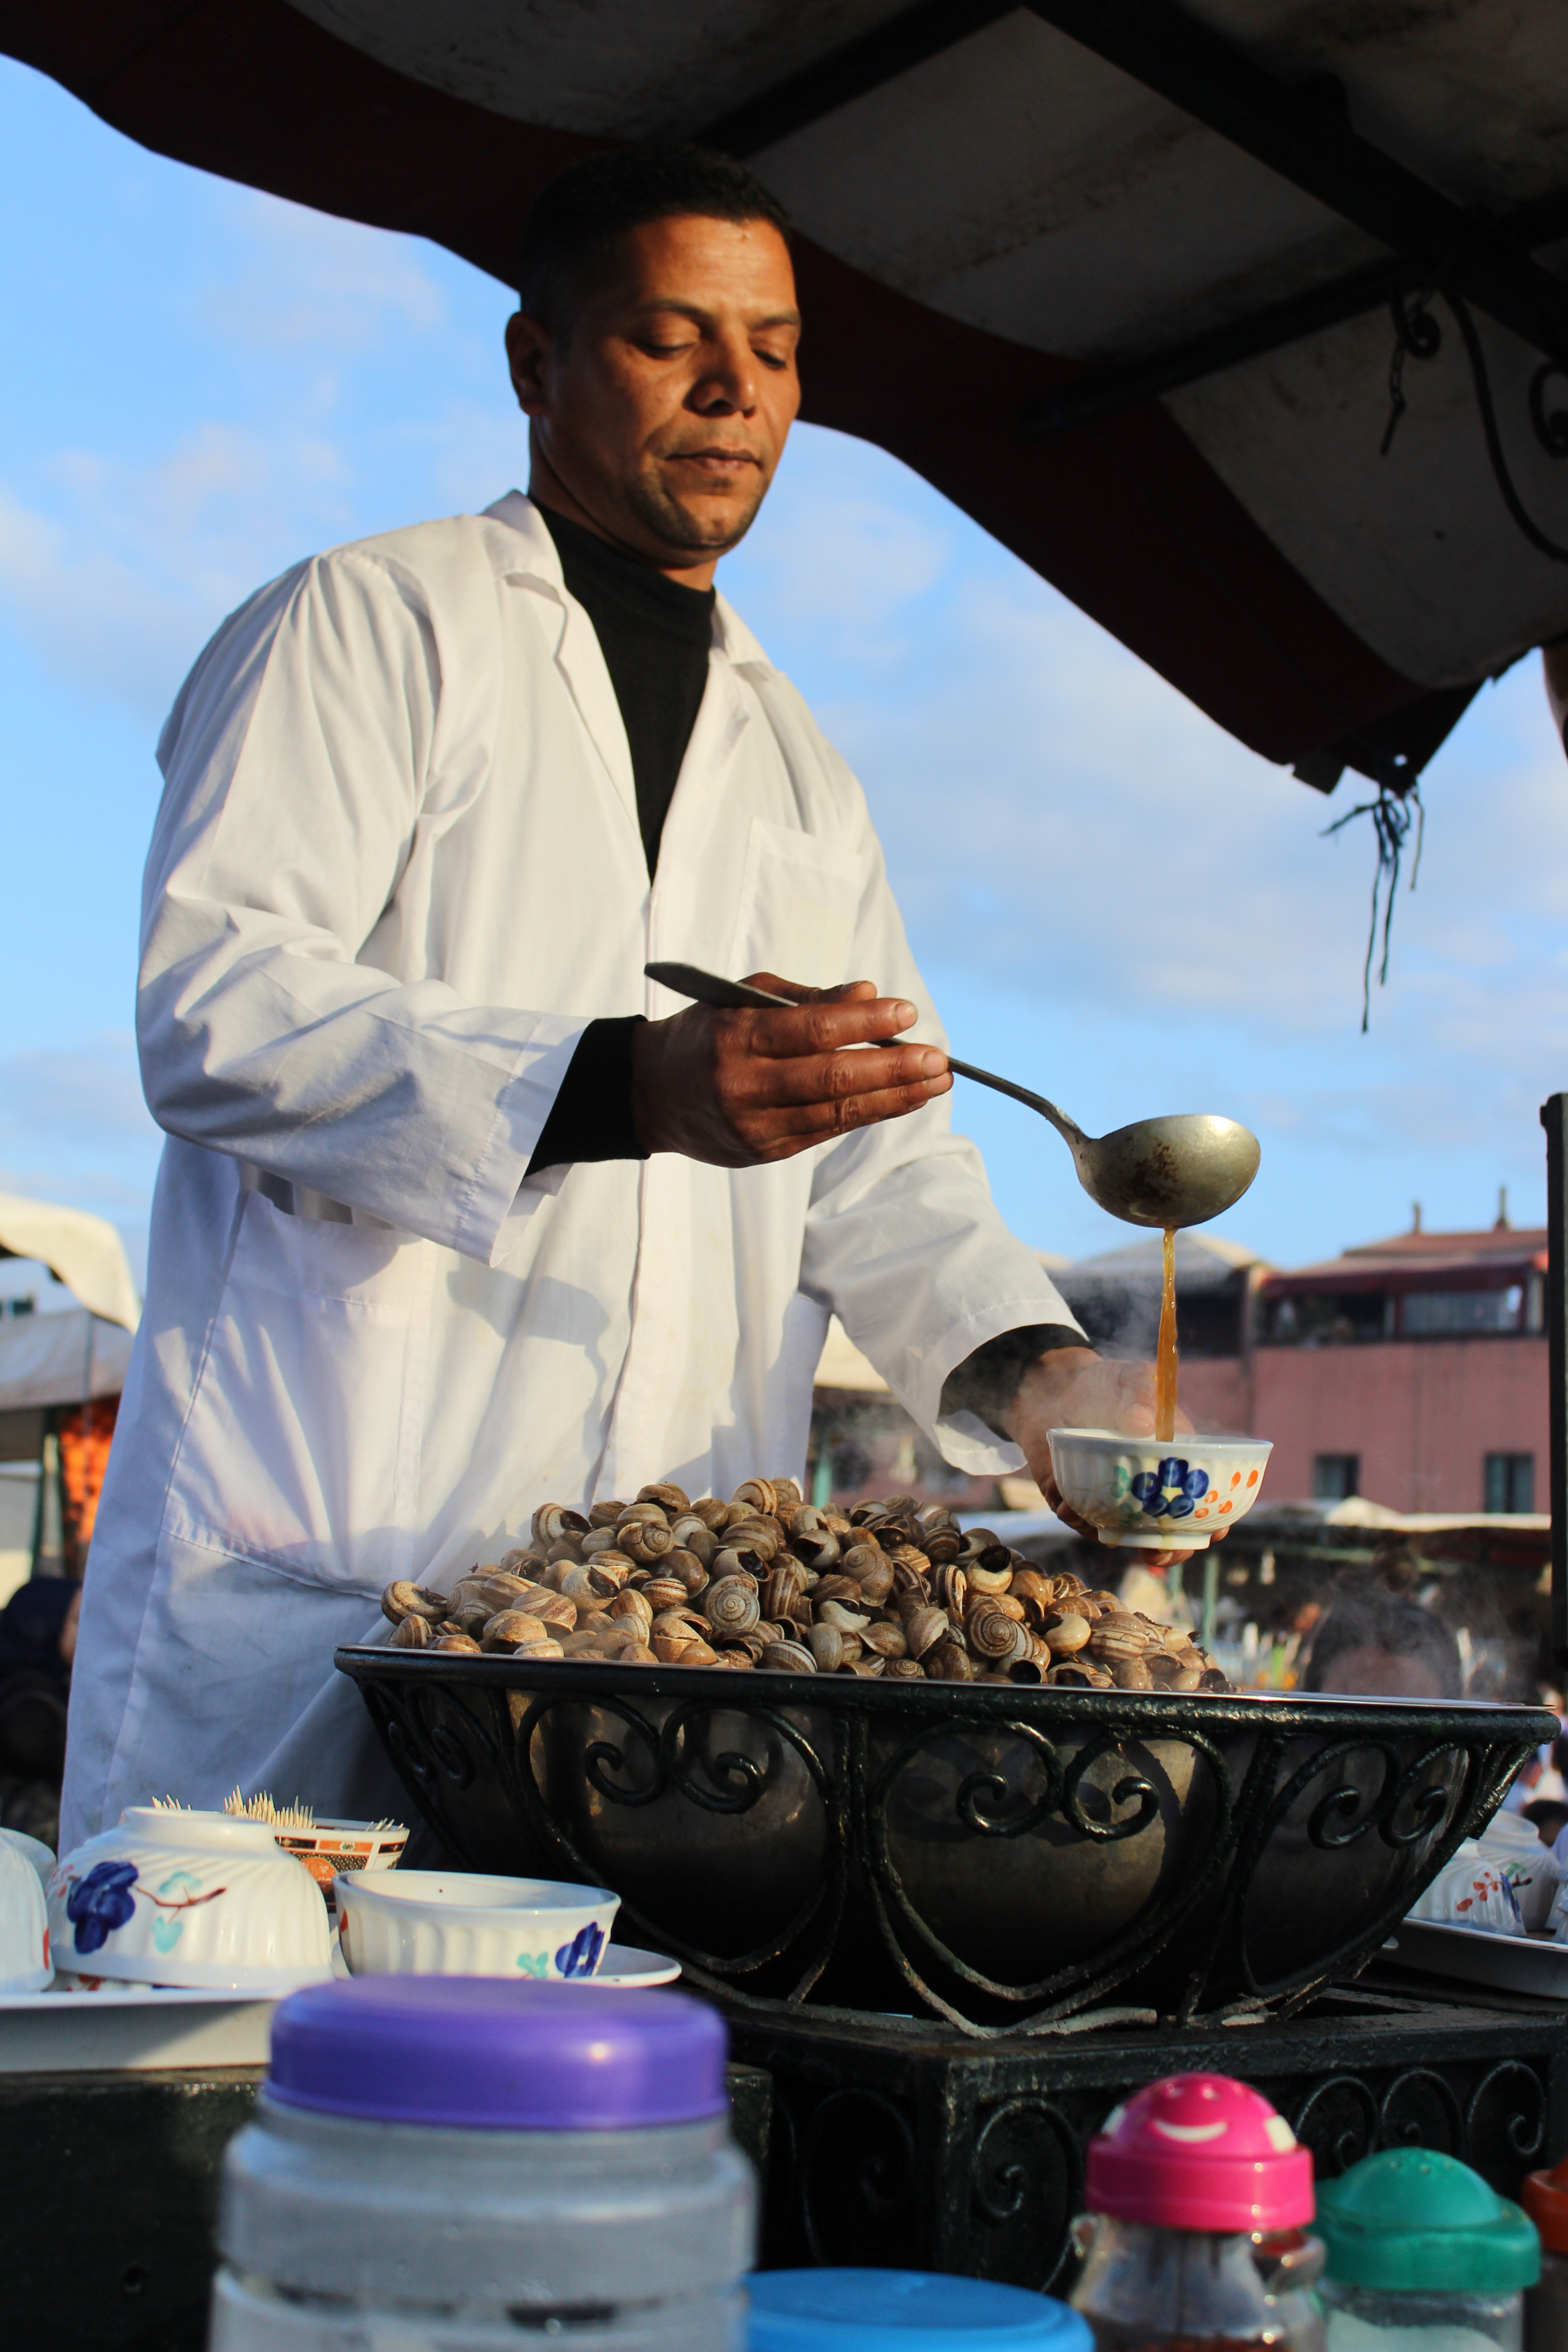 Snail stall owner in Marrakech preparing some cooked snails for a customer